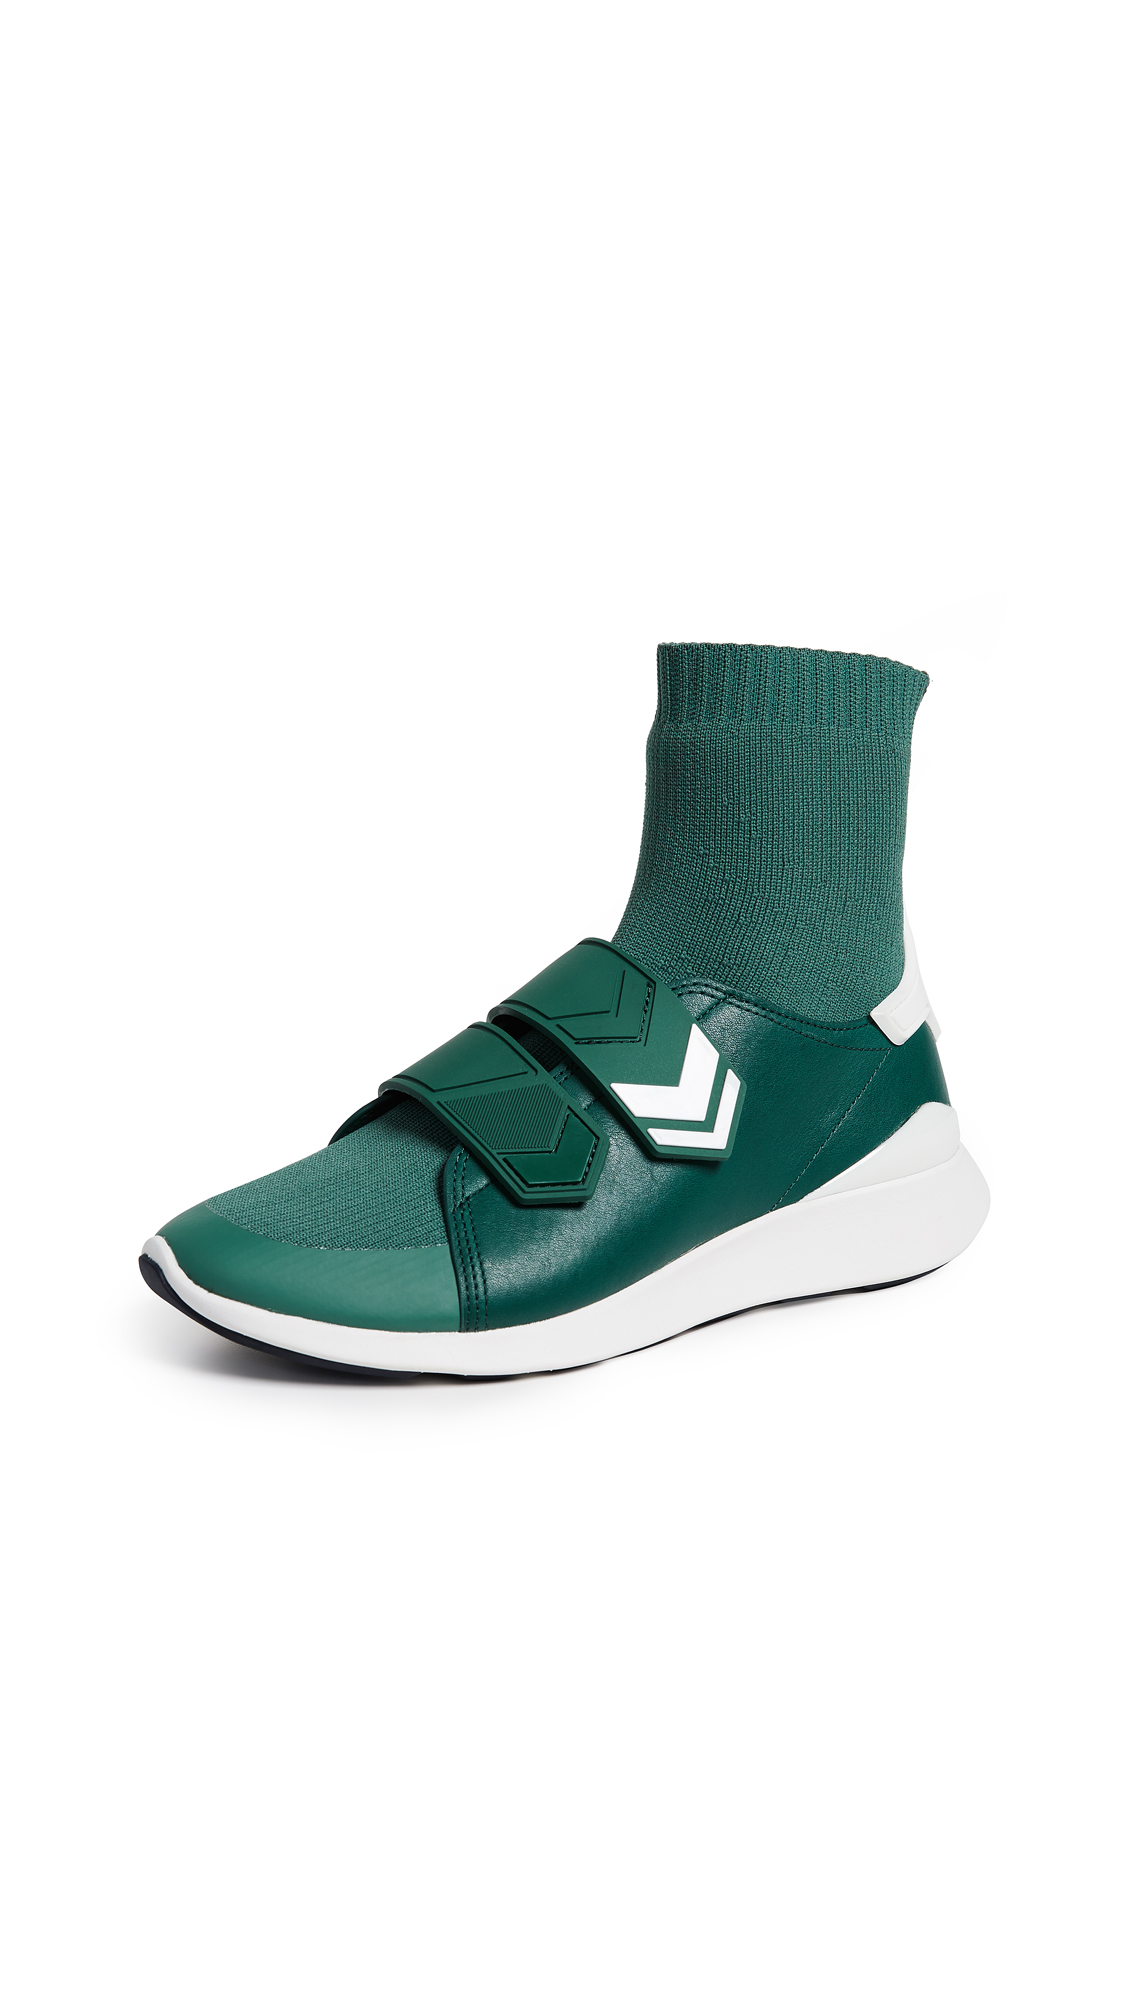 Tory Sport Chevron Strap Sock Sneakers - Conifer